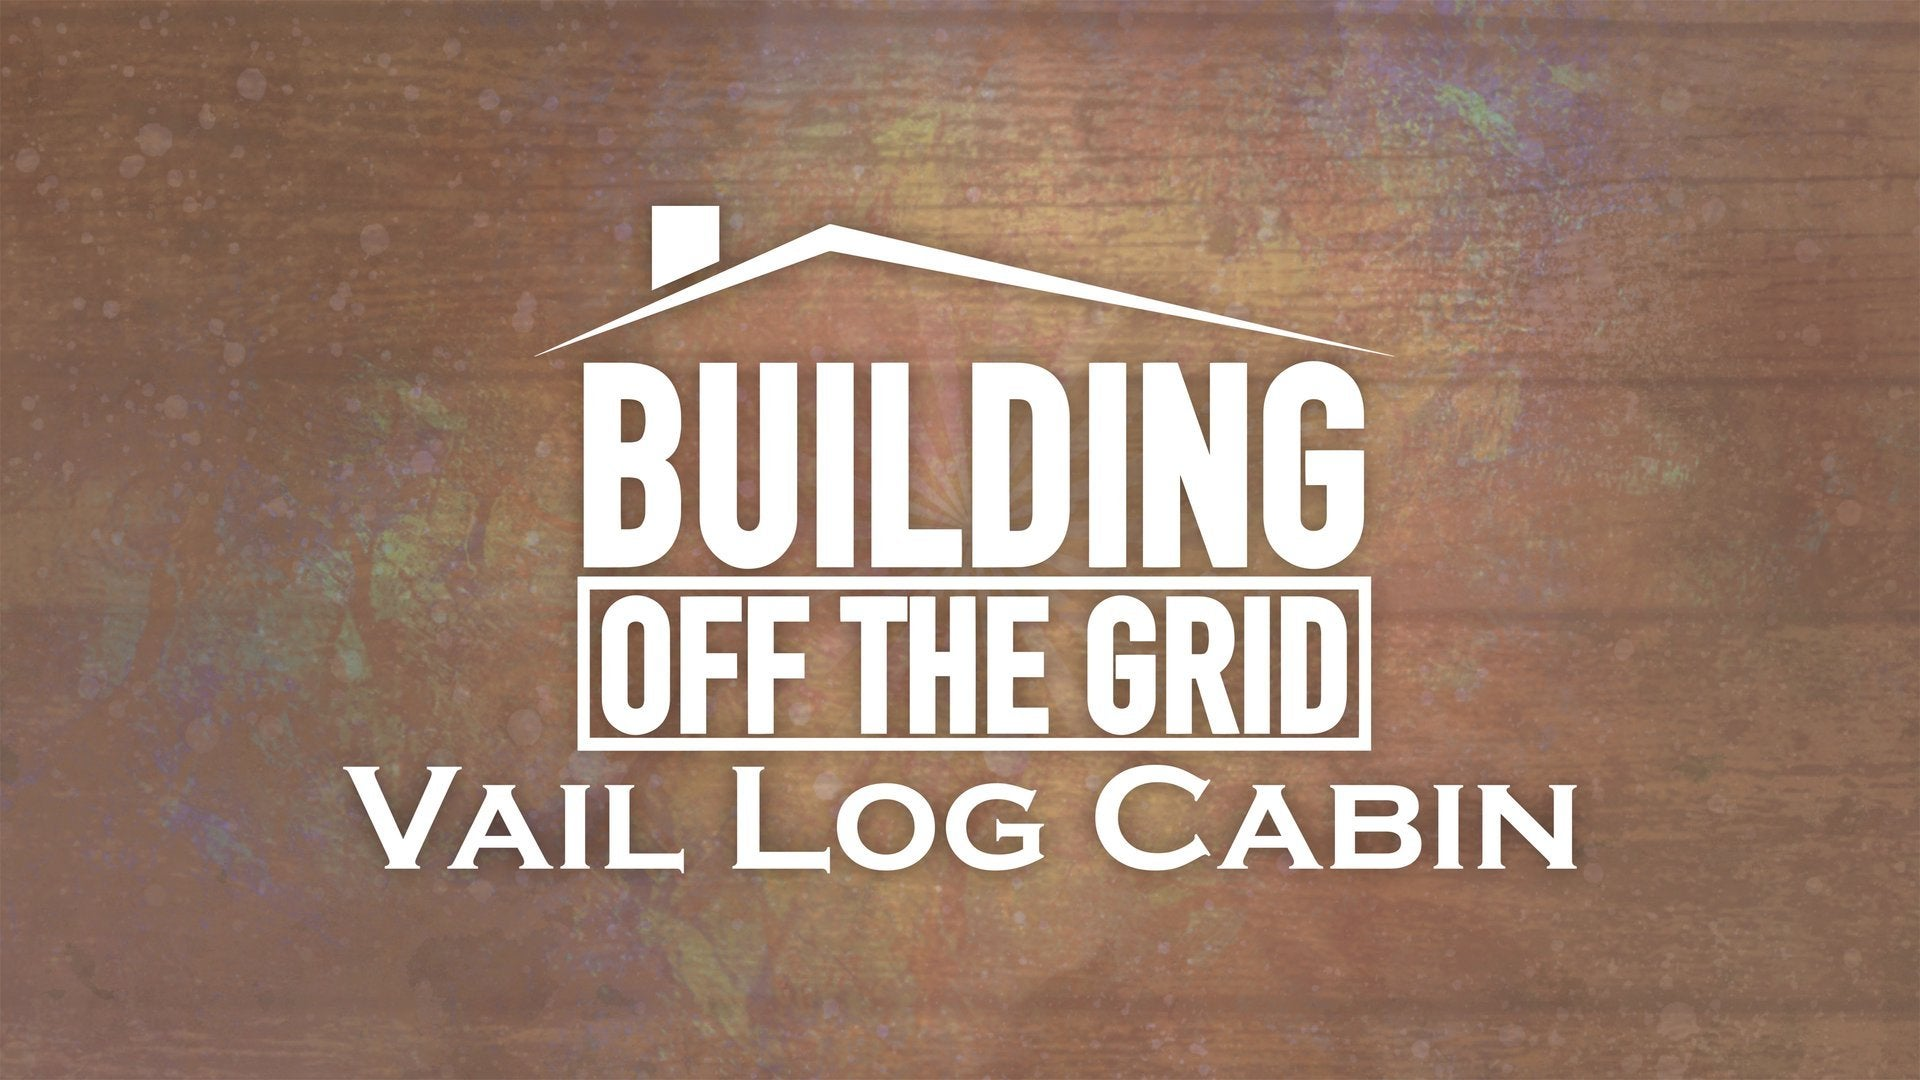 Building Off the Grid: Vail Log Cabin